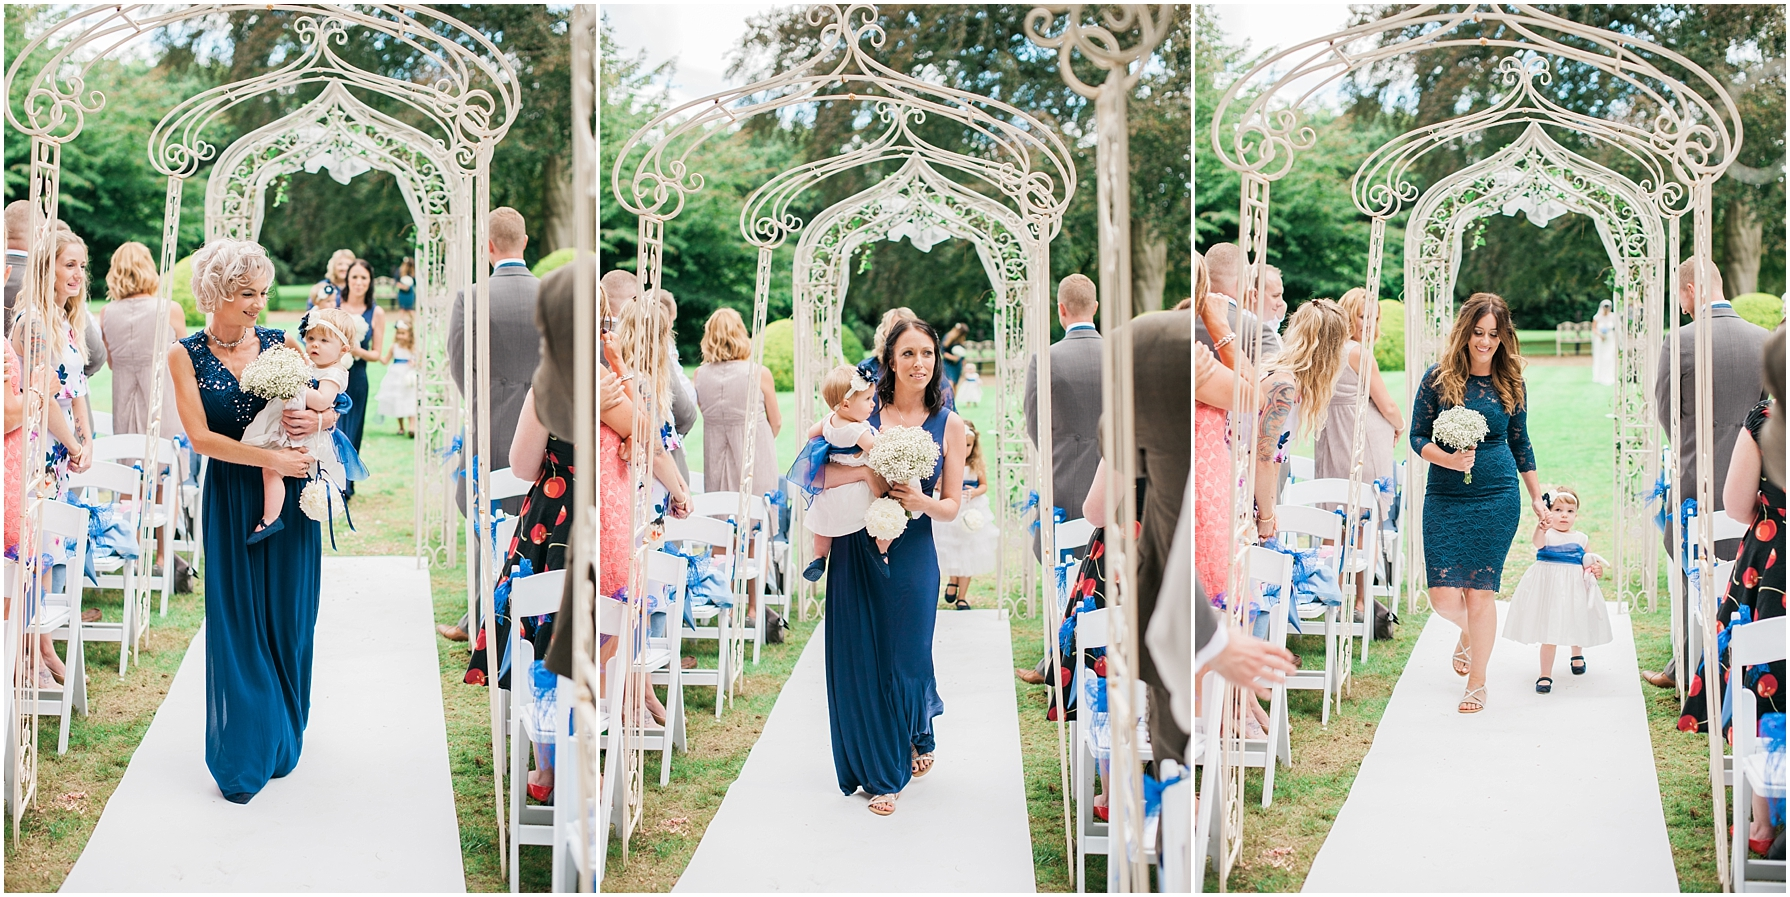 bridesmaids walking up the aisle wearing navy blue